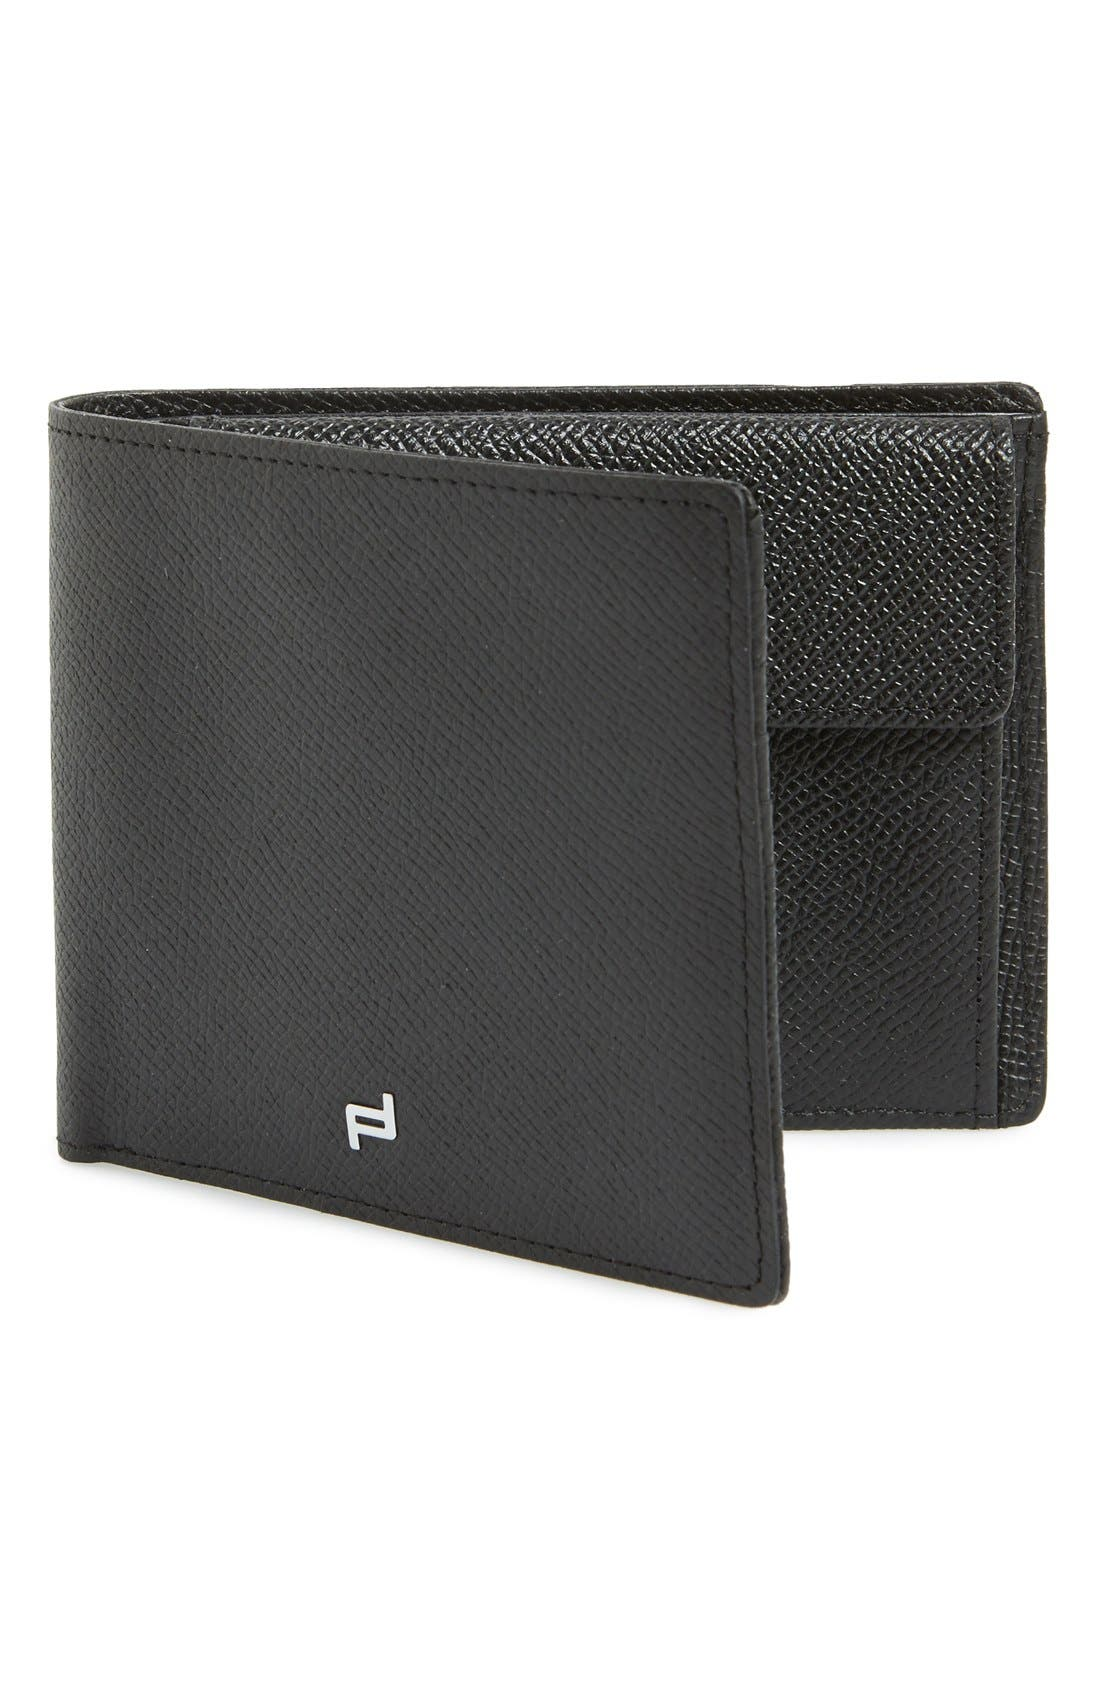 Alternate Image 1 Selected - Porsche Design 'French Classic 3.0' Leather Billfold Wallet